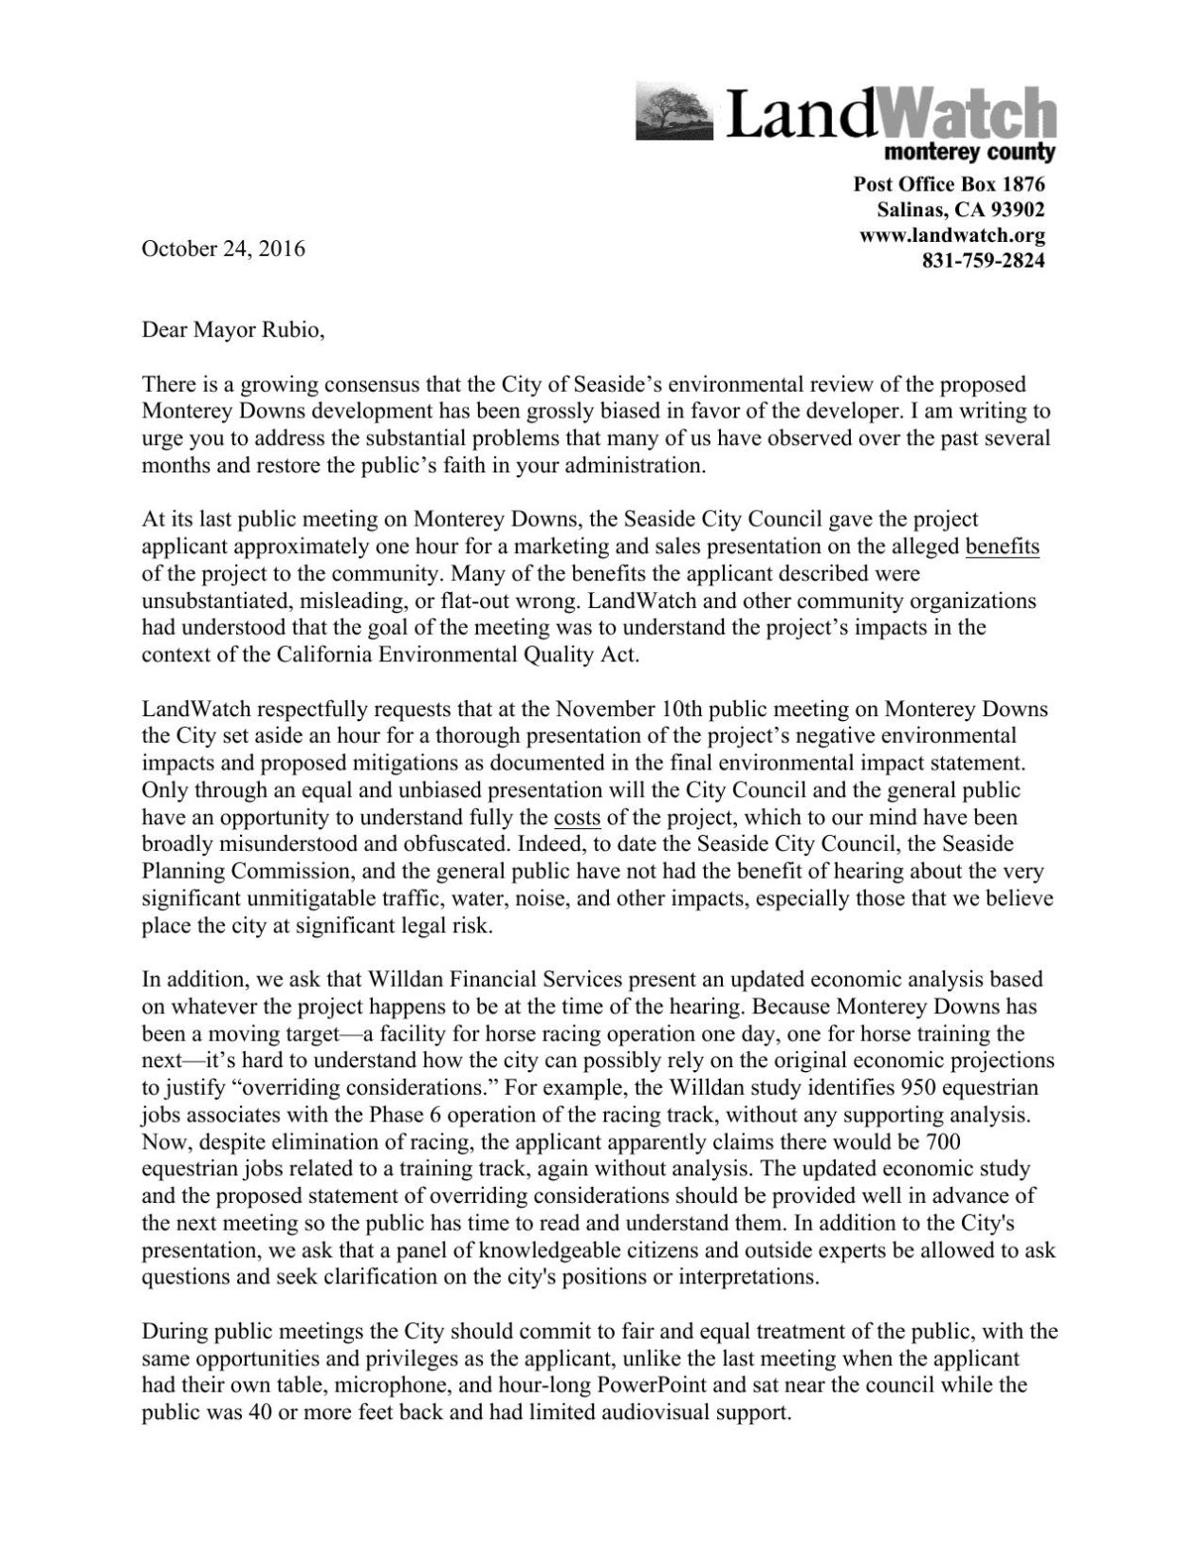 LandWatch letter to Seaside City Council